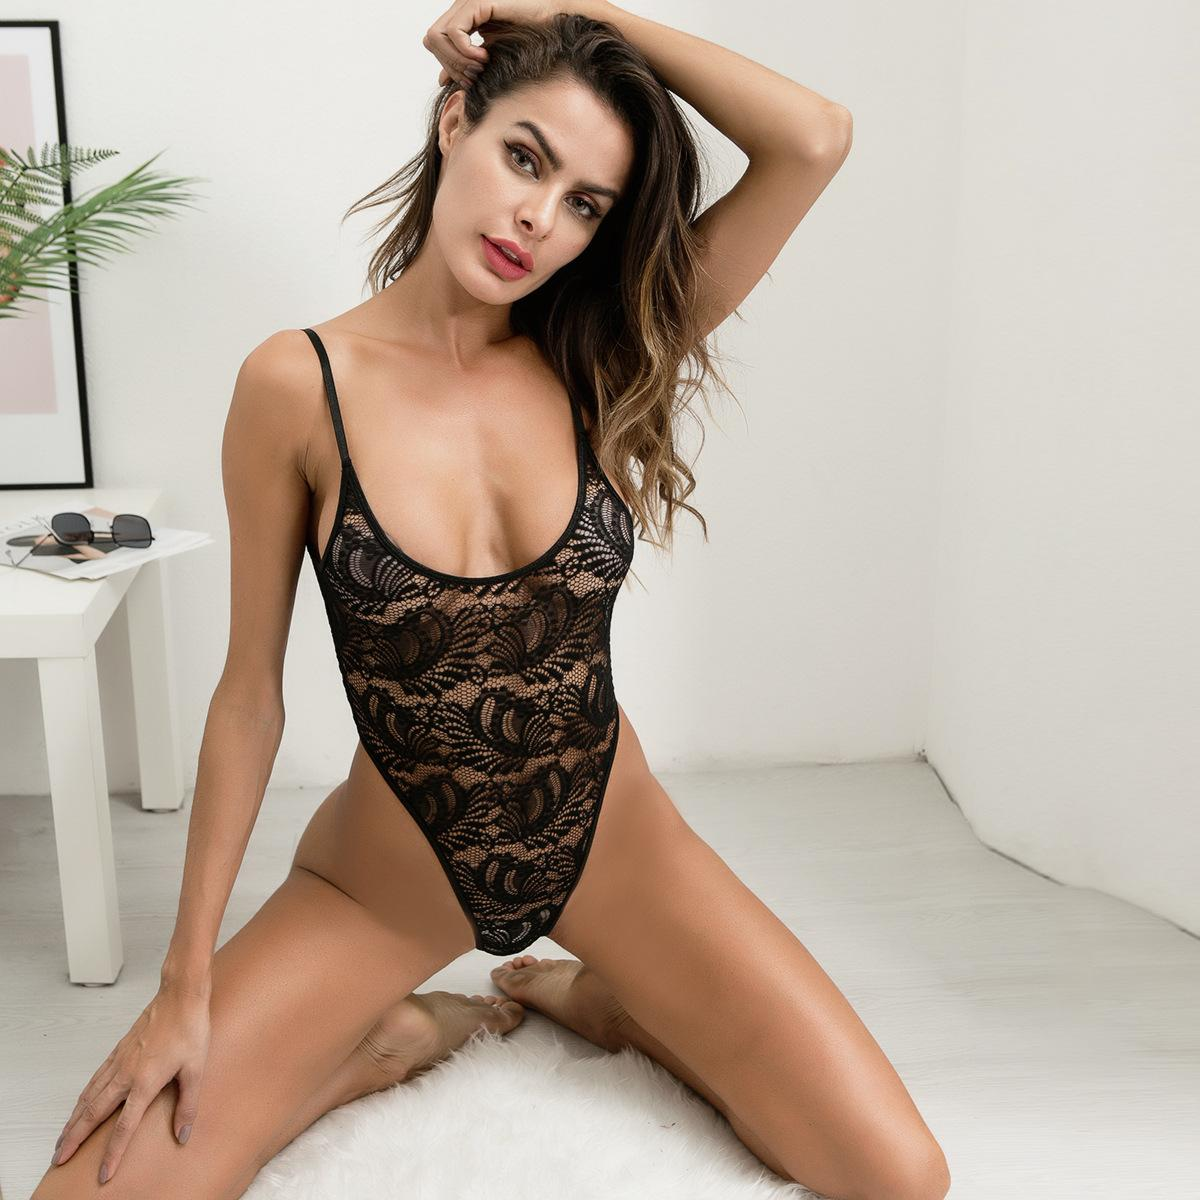 e38aaccf5 Women Sexy Teddies Underwear Spaghetti Strap Black Floral Lace See Through  Lin Tai Sexy Lingerie For Ladies Sexy Sleepwear Lace Lingerie Set Lace  Underwear ...